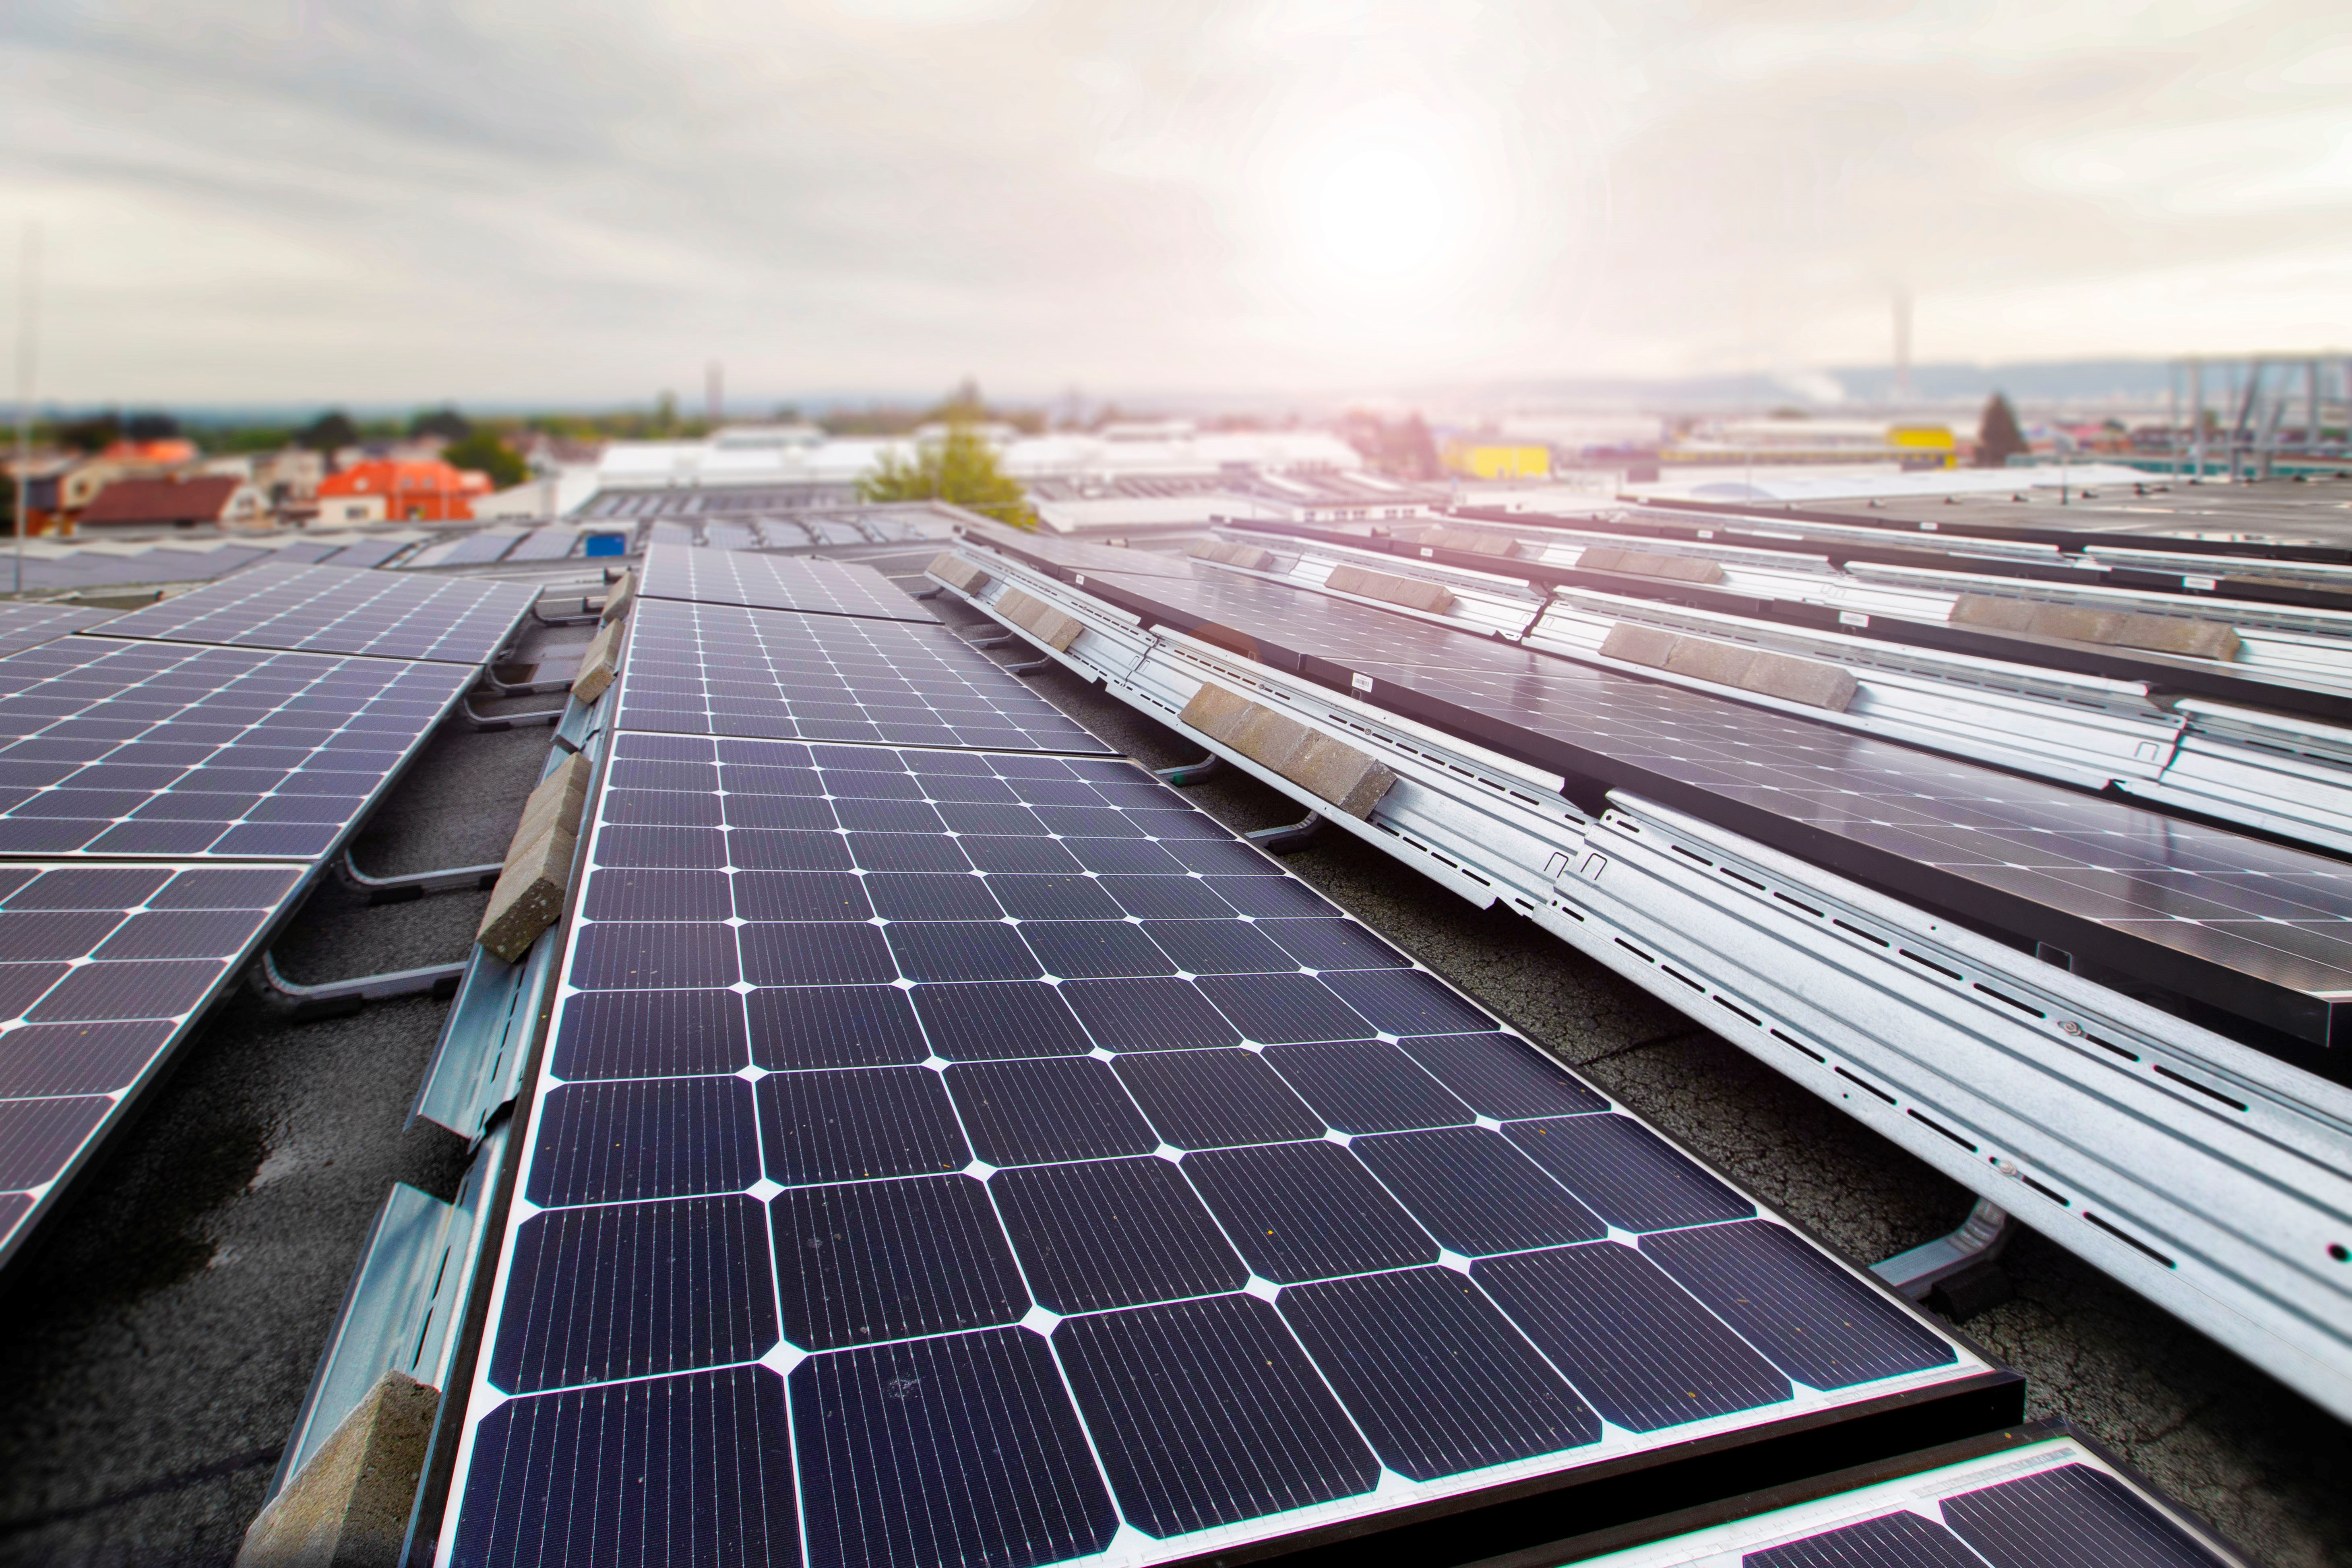 201119_new-photovoltaic-system-1